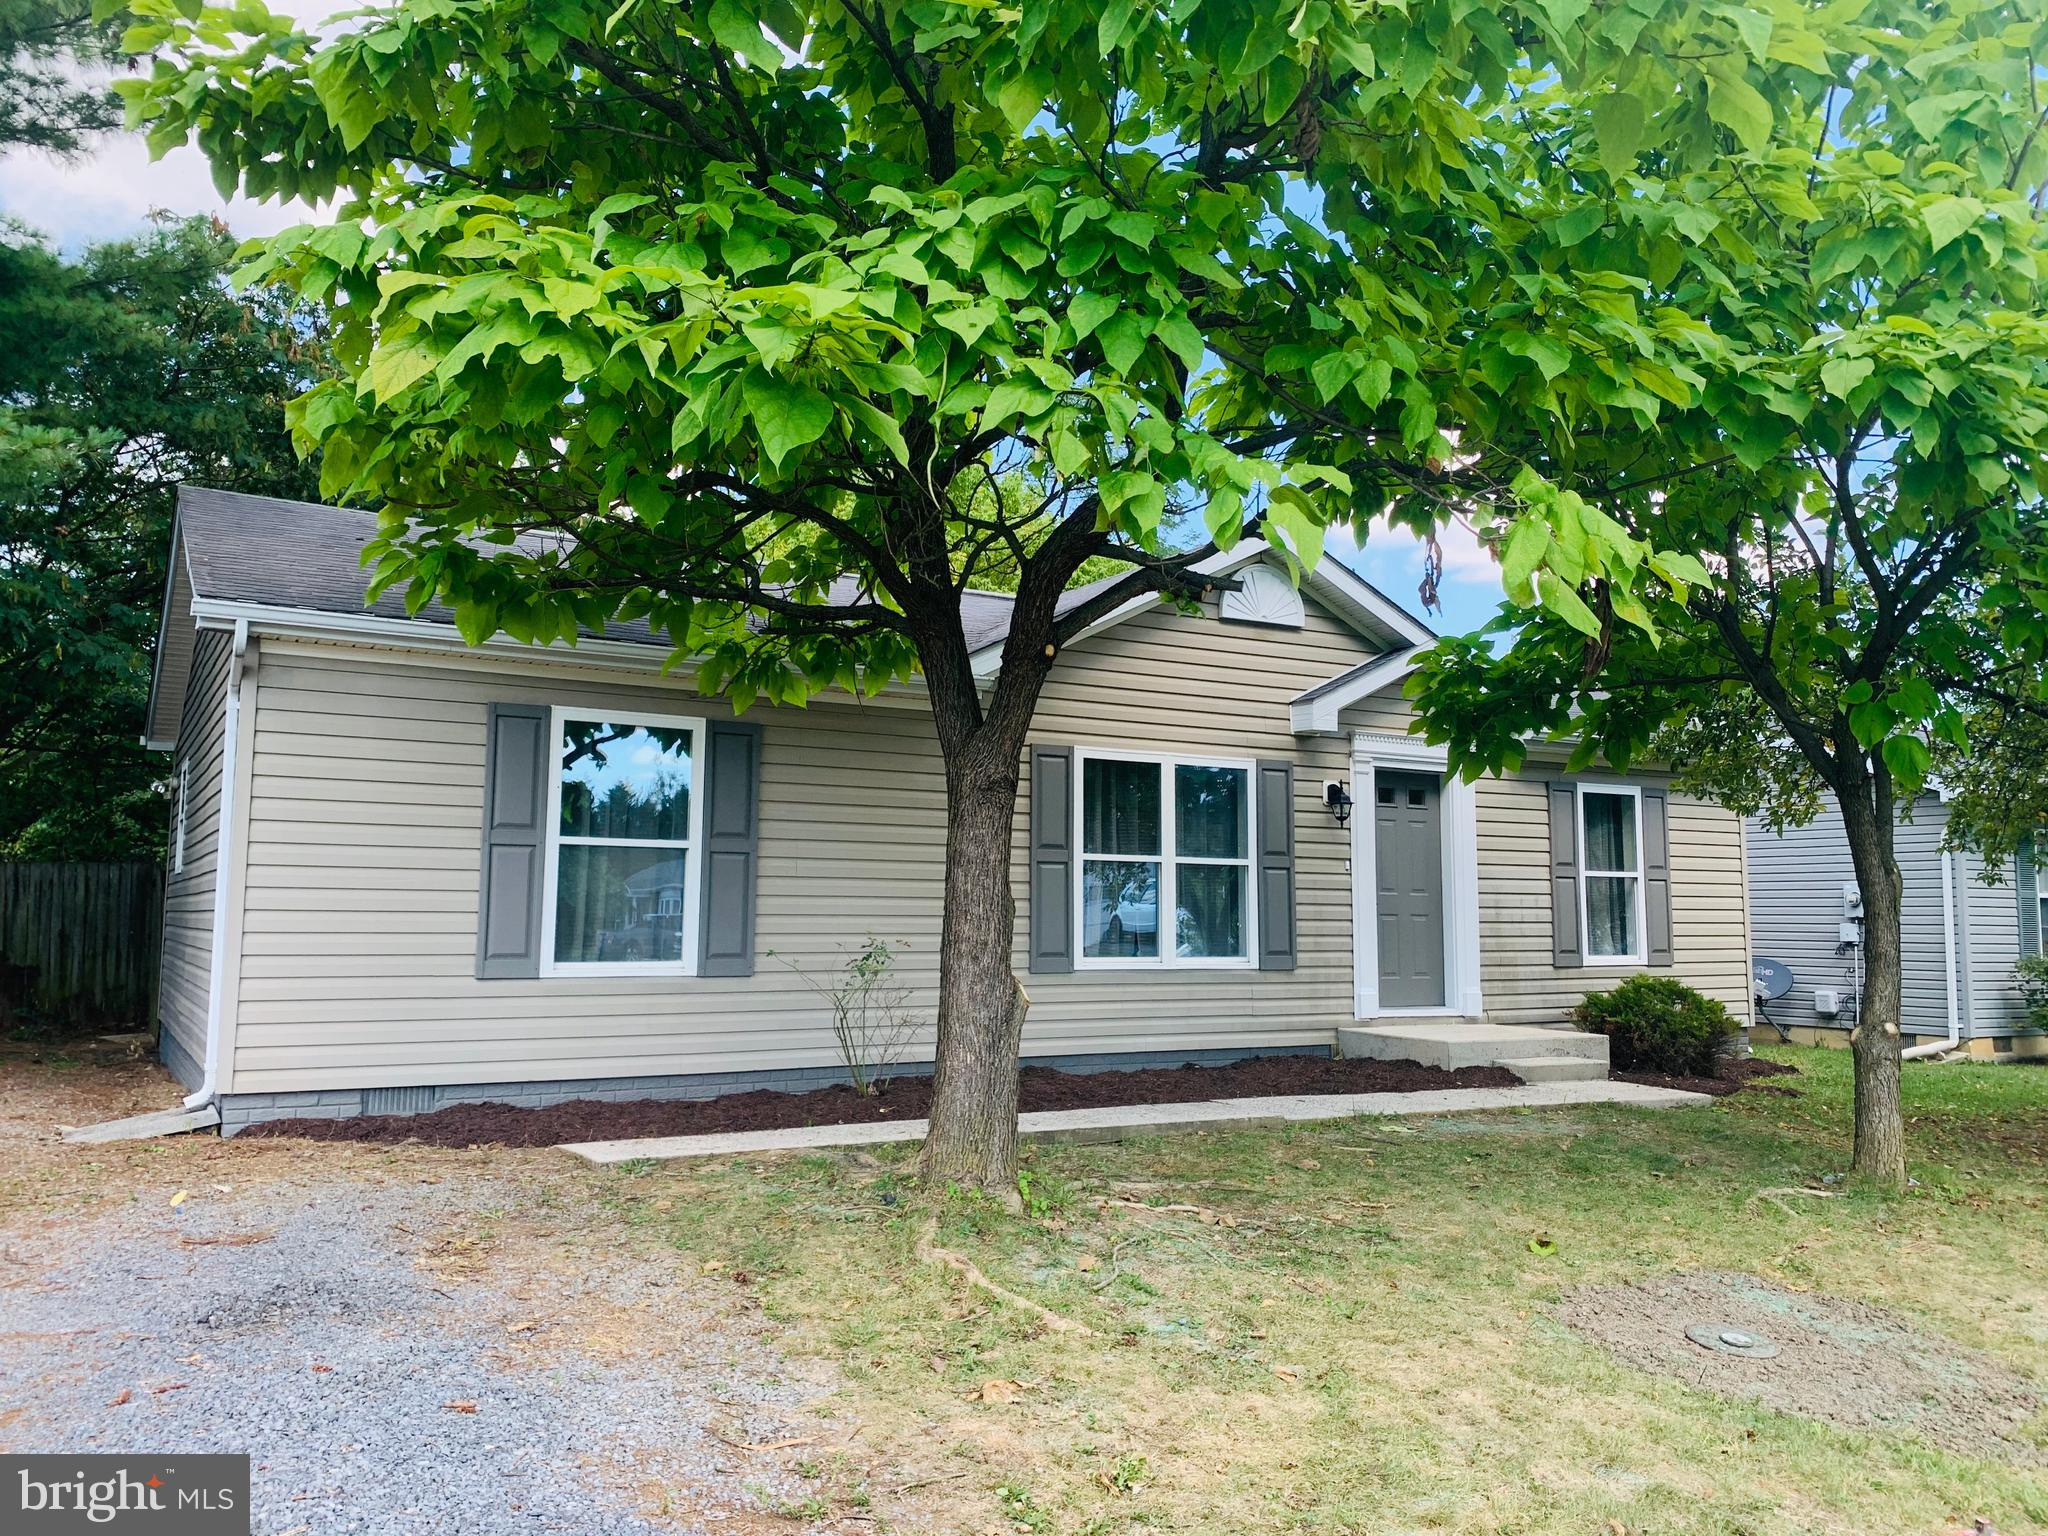 Move in Ready! Ranch style home located on approx. 0.19ac in Springfield Village features fresh paint and flooring. Home features 3 BRs and 2 FBs with a fenced back yard. Seller offering a Home Warranty.